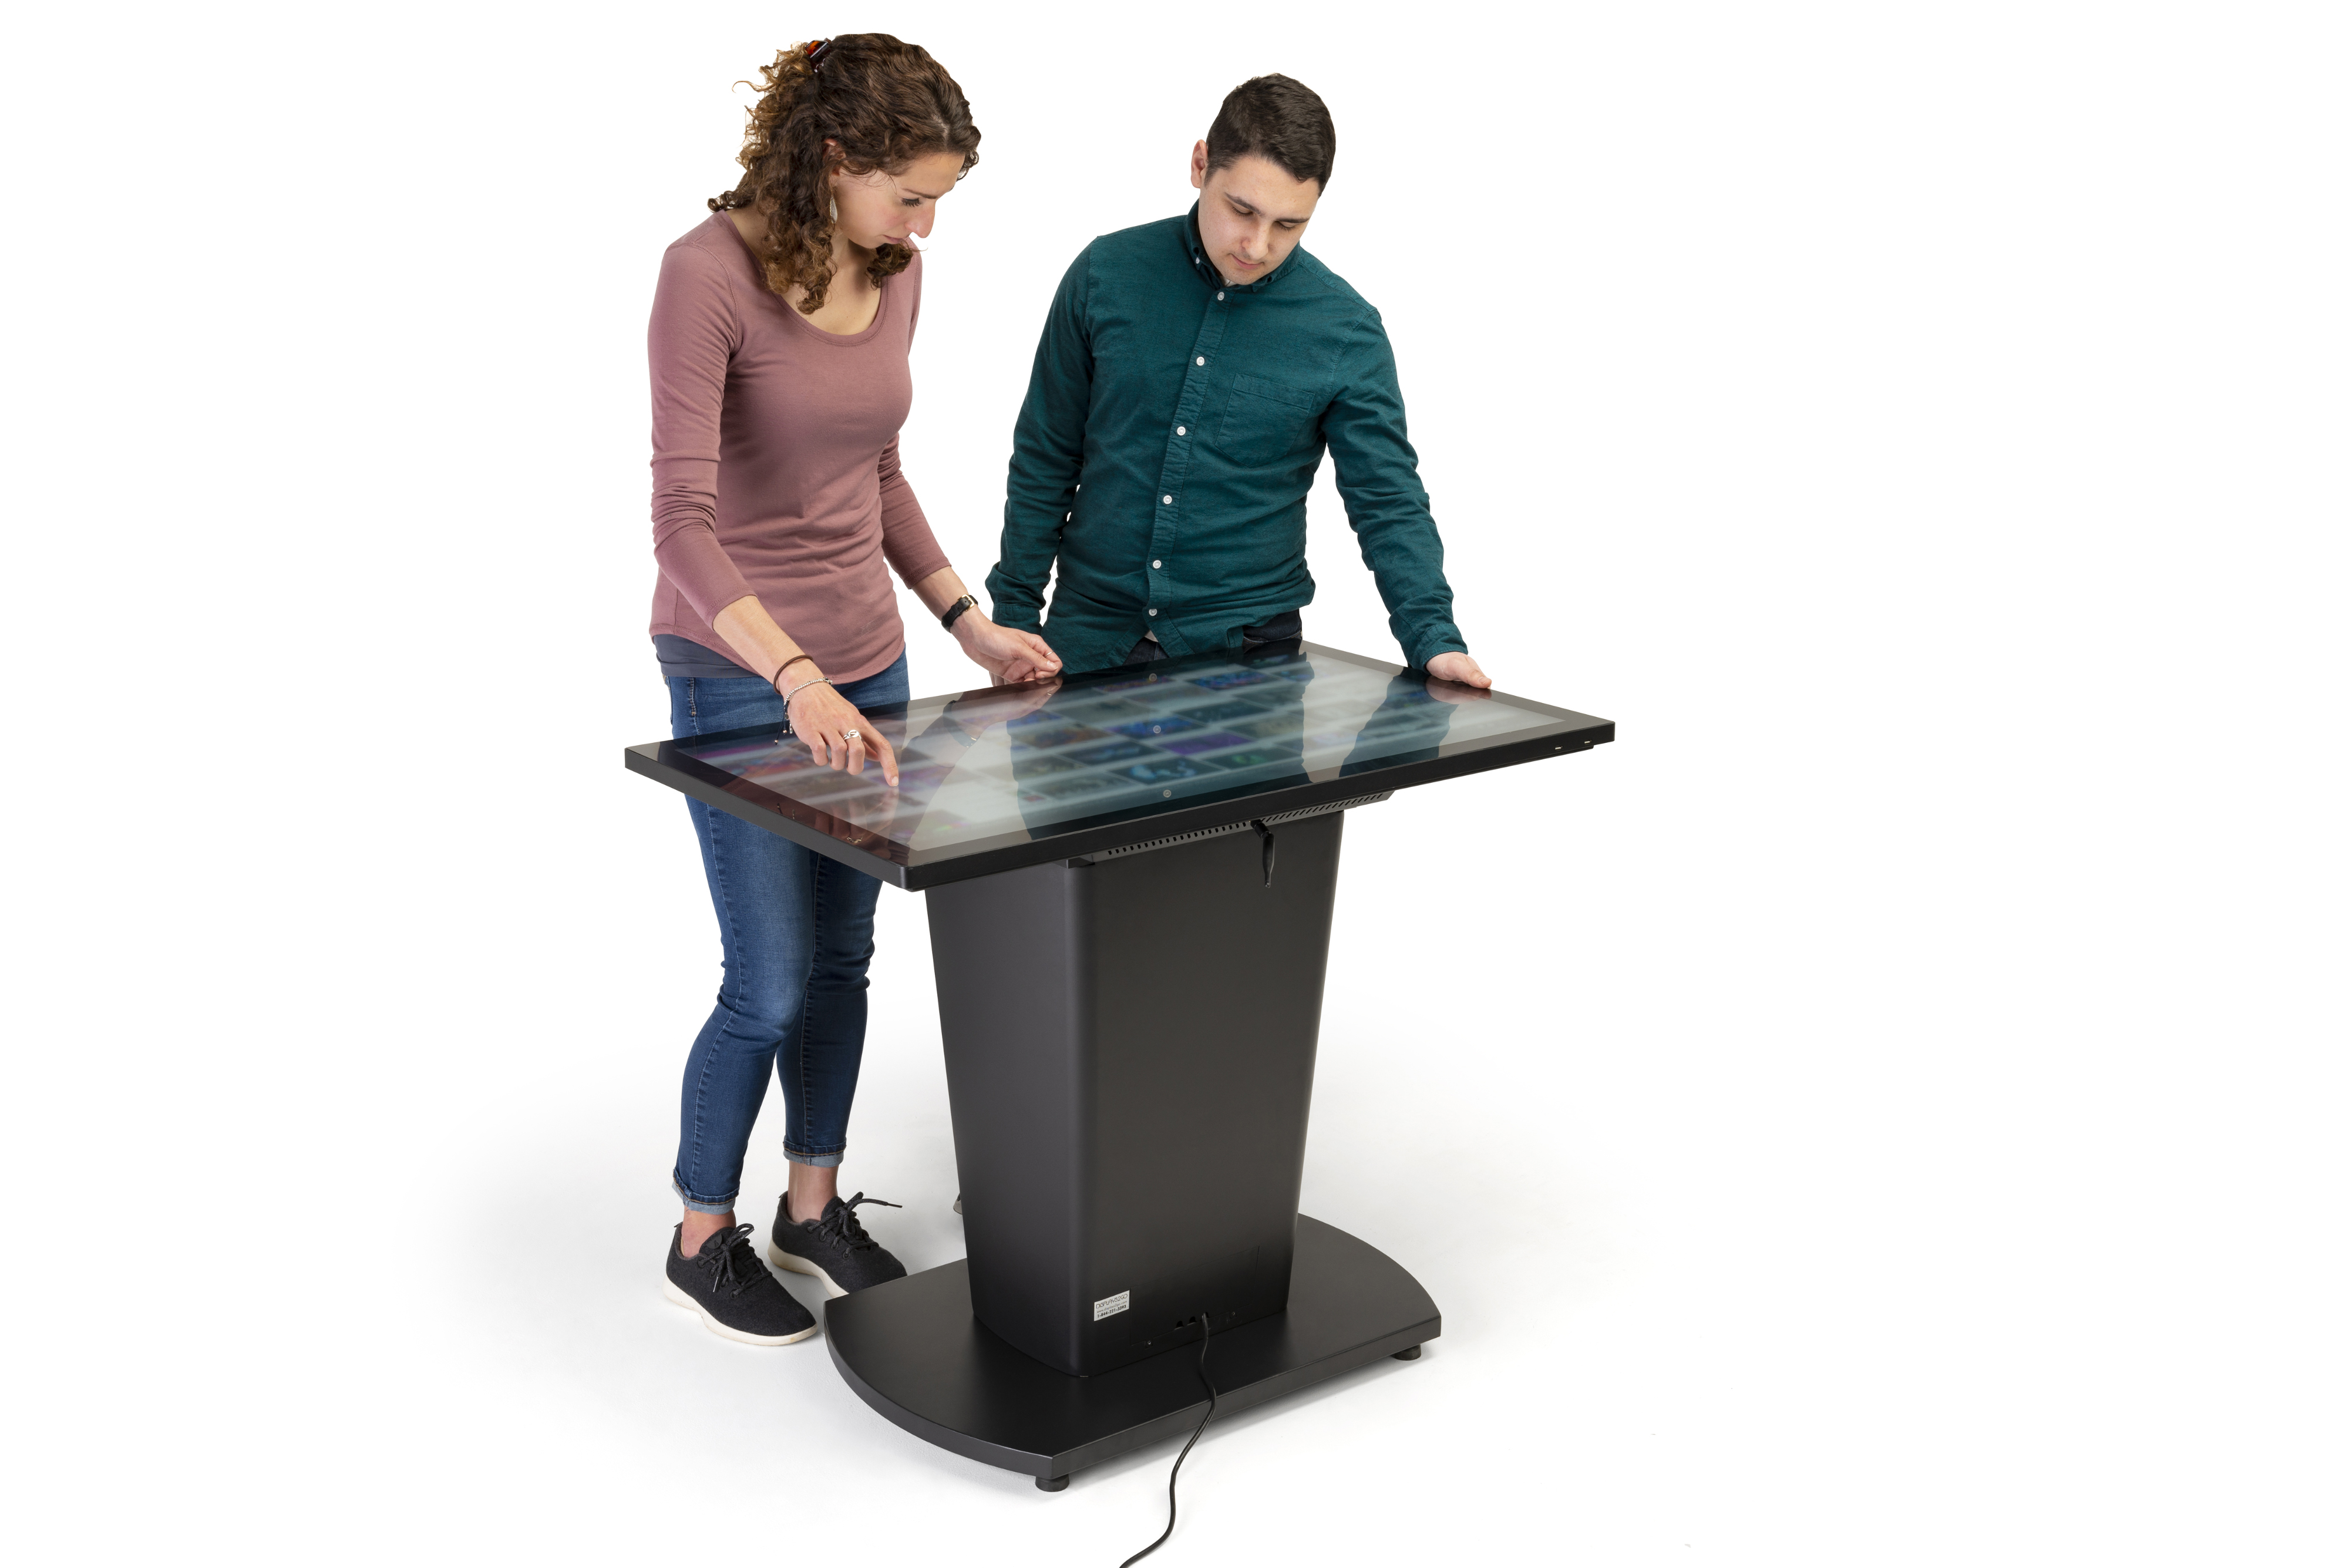 Multi User Capacitive Touch Screen Table for Group Projects